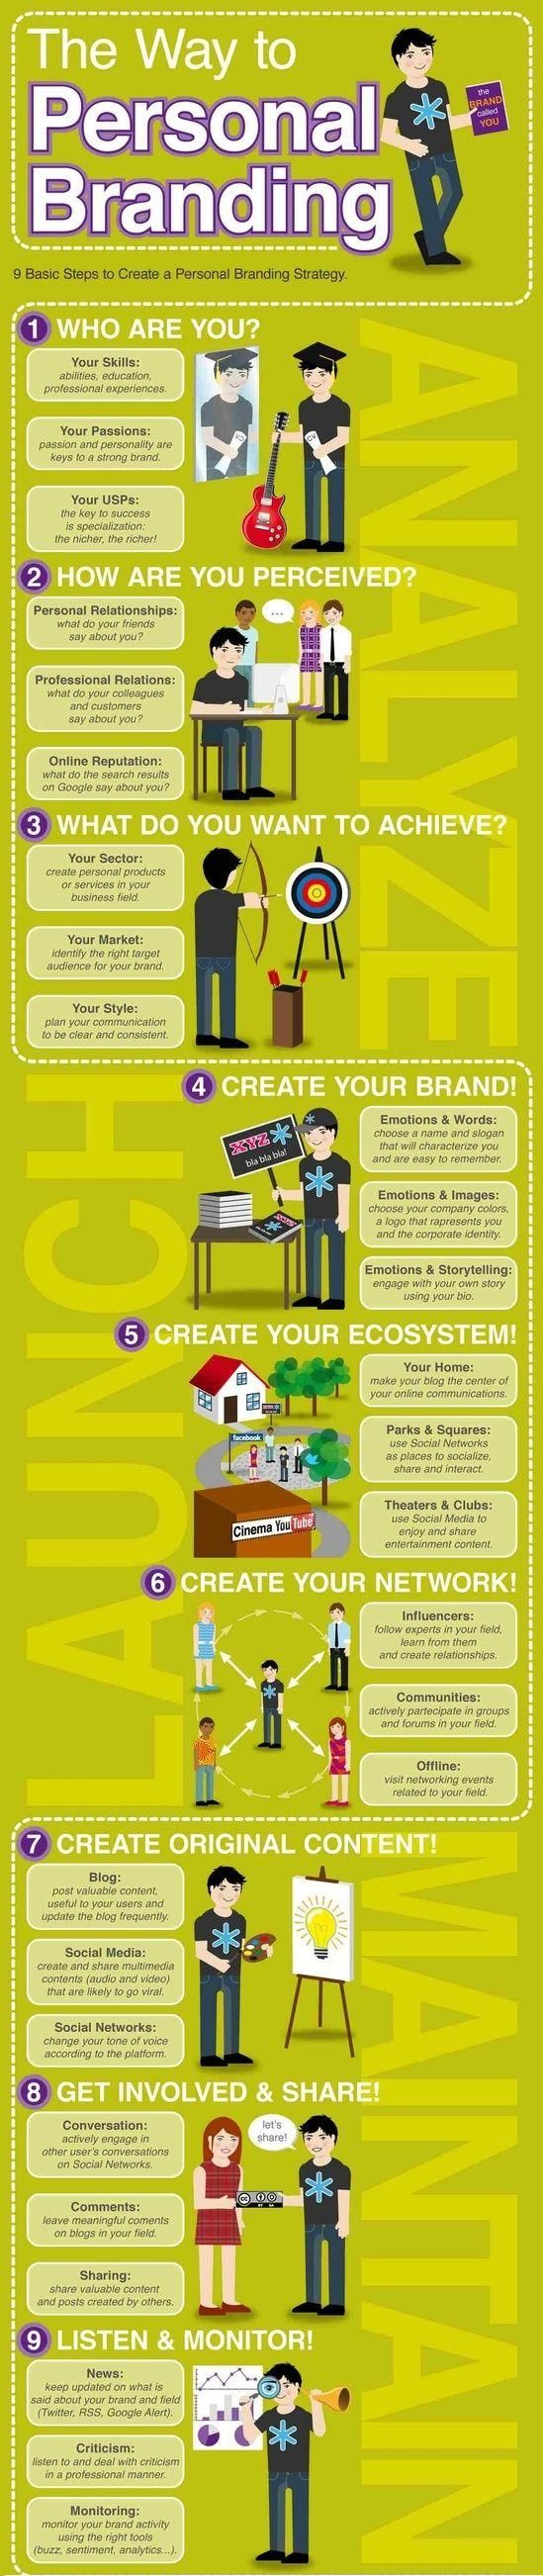 Way of Personal Branding your Business